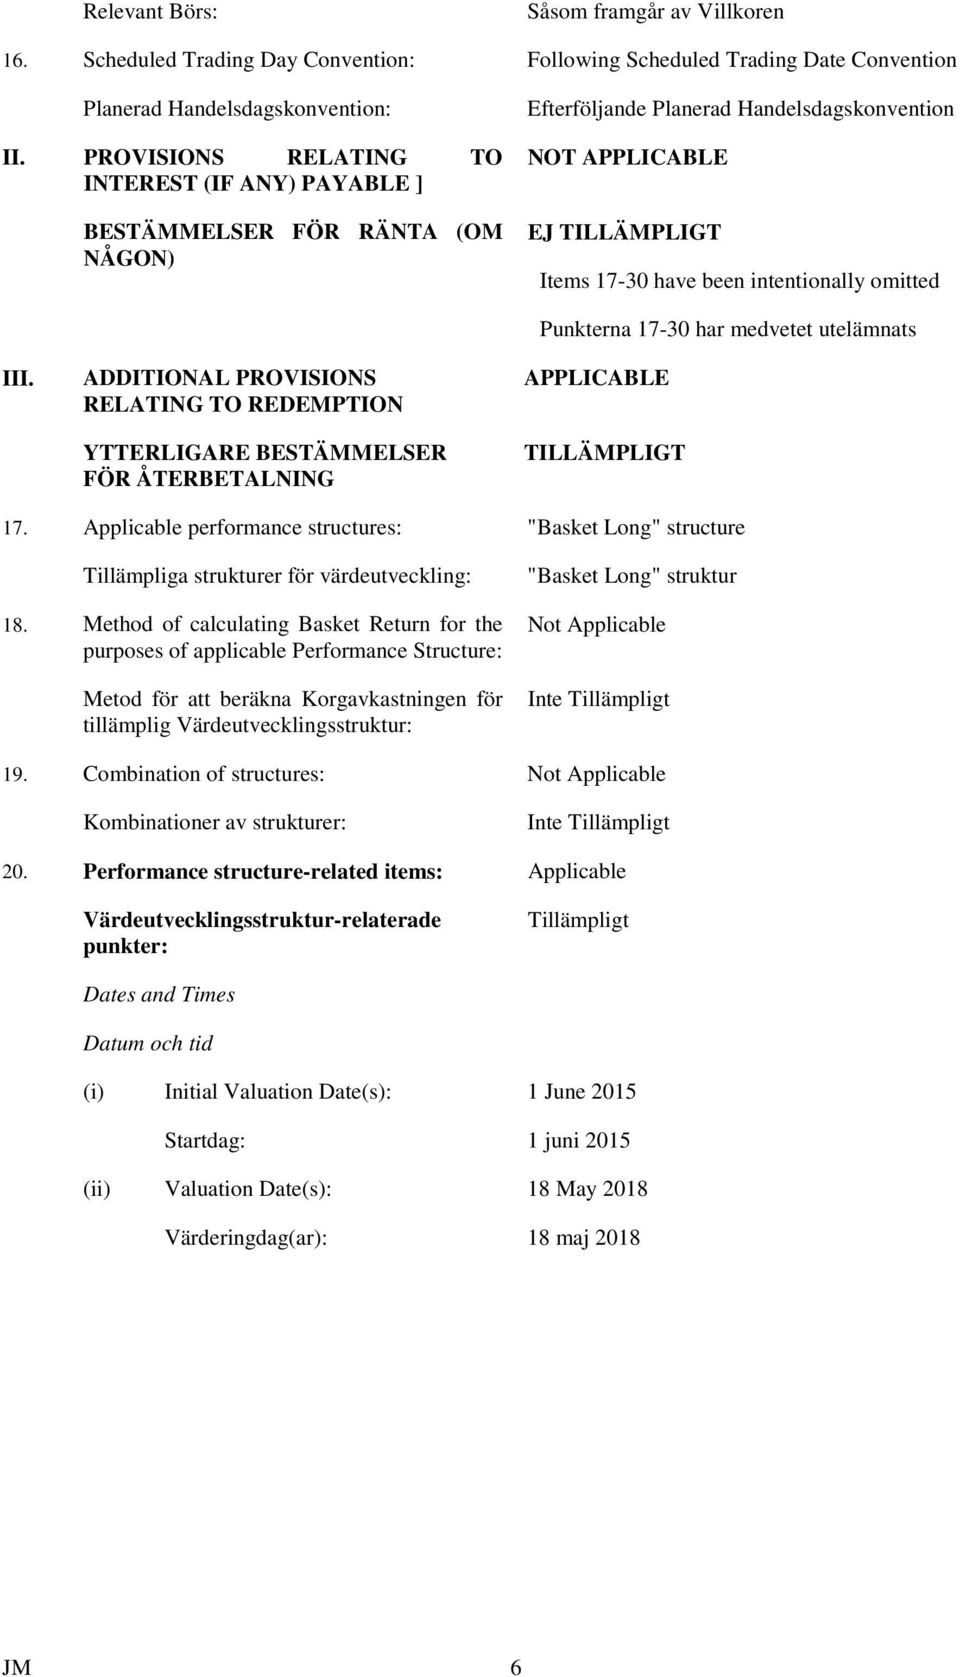 omitted III. ADDITIONAL PROVISIONS RELATING TO REDEMPTION YTTERLIGARE BESTÄMMELSER FÖR ÅTERBETALNING Punkterna 17-30 har medvetet utelämnats APPLICABLE TILLÄMPLIGT 17.